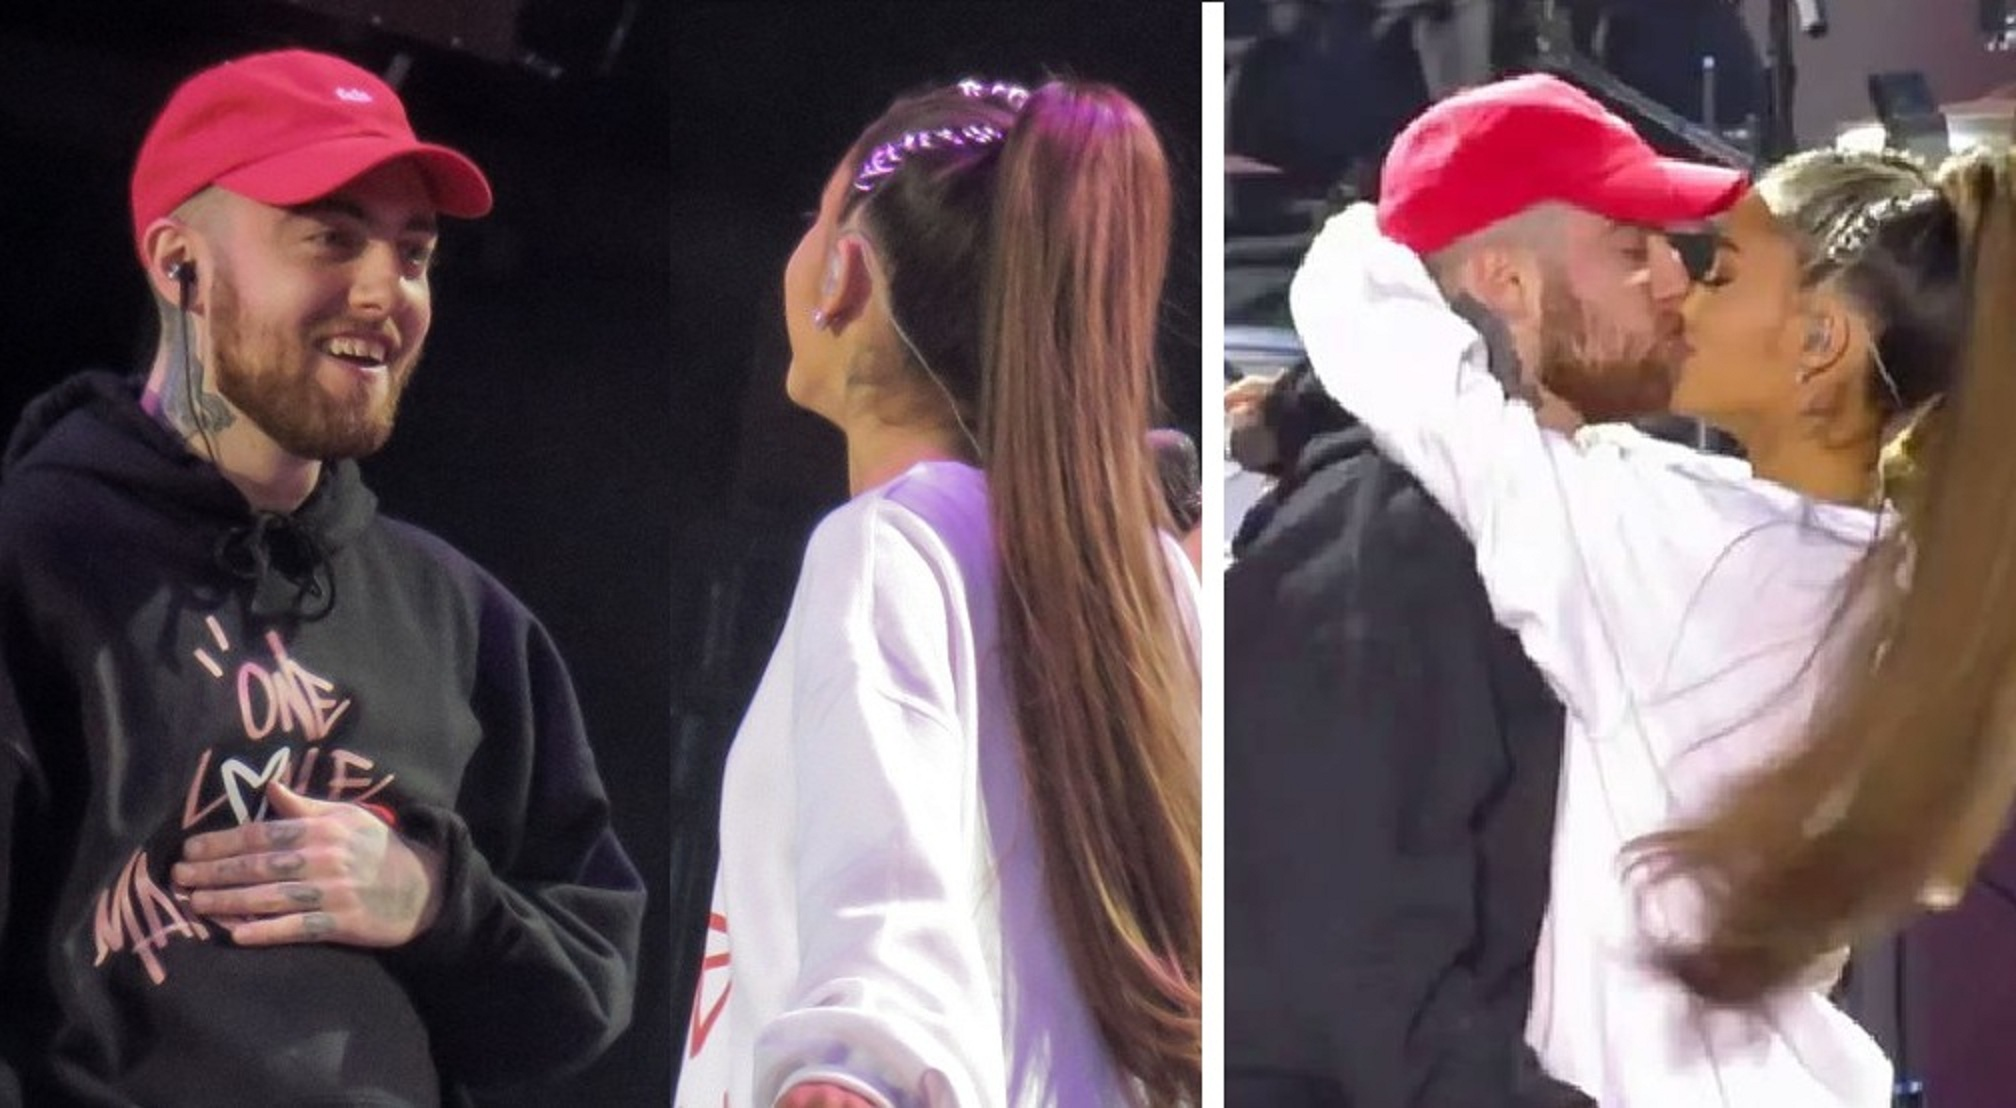 Watch: Mac Miller's Last Performance with Ariana Grande at 'One Love Manchester' concert!